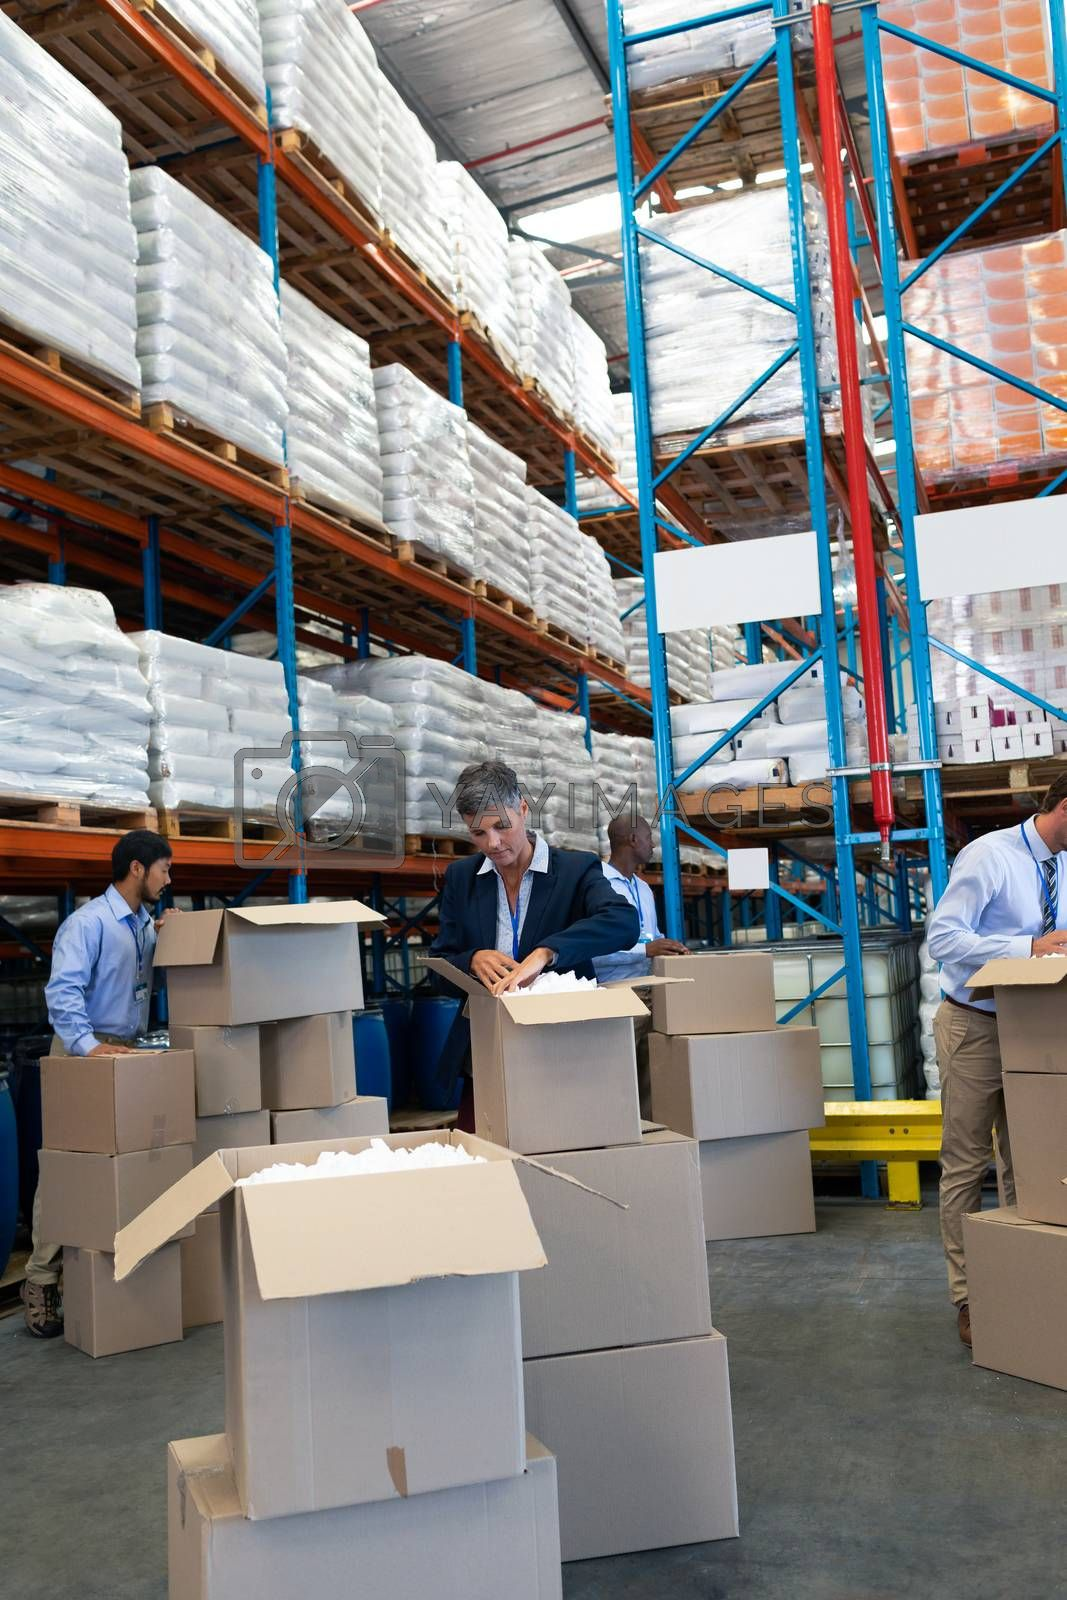 Front view of mature diverse staff unpacking cardboard boxes in warehouse. This is a freight transportation and distribution warehouse. Industrial and industrial workers concept